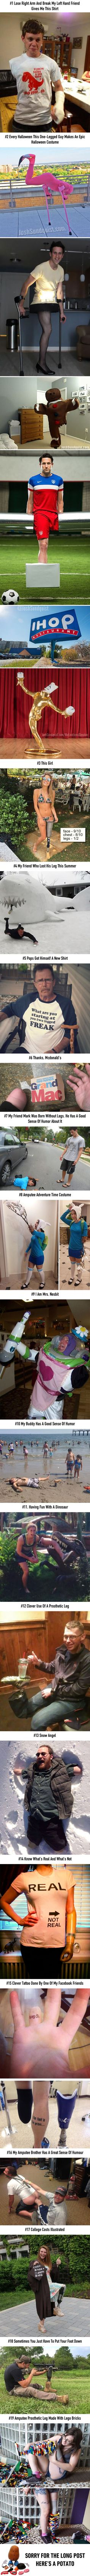 19 Hilarious Amputees Who Lost Their Limbs, But Not Their Sense Of Humor - 9GAG